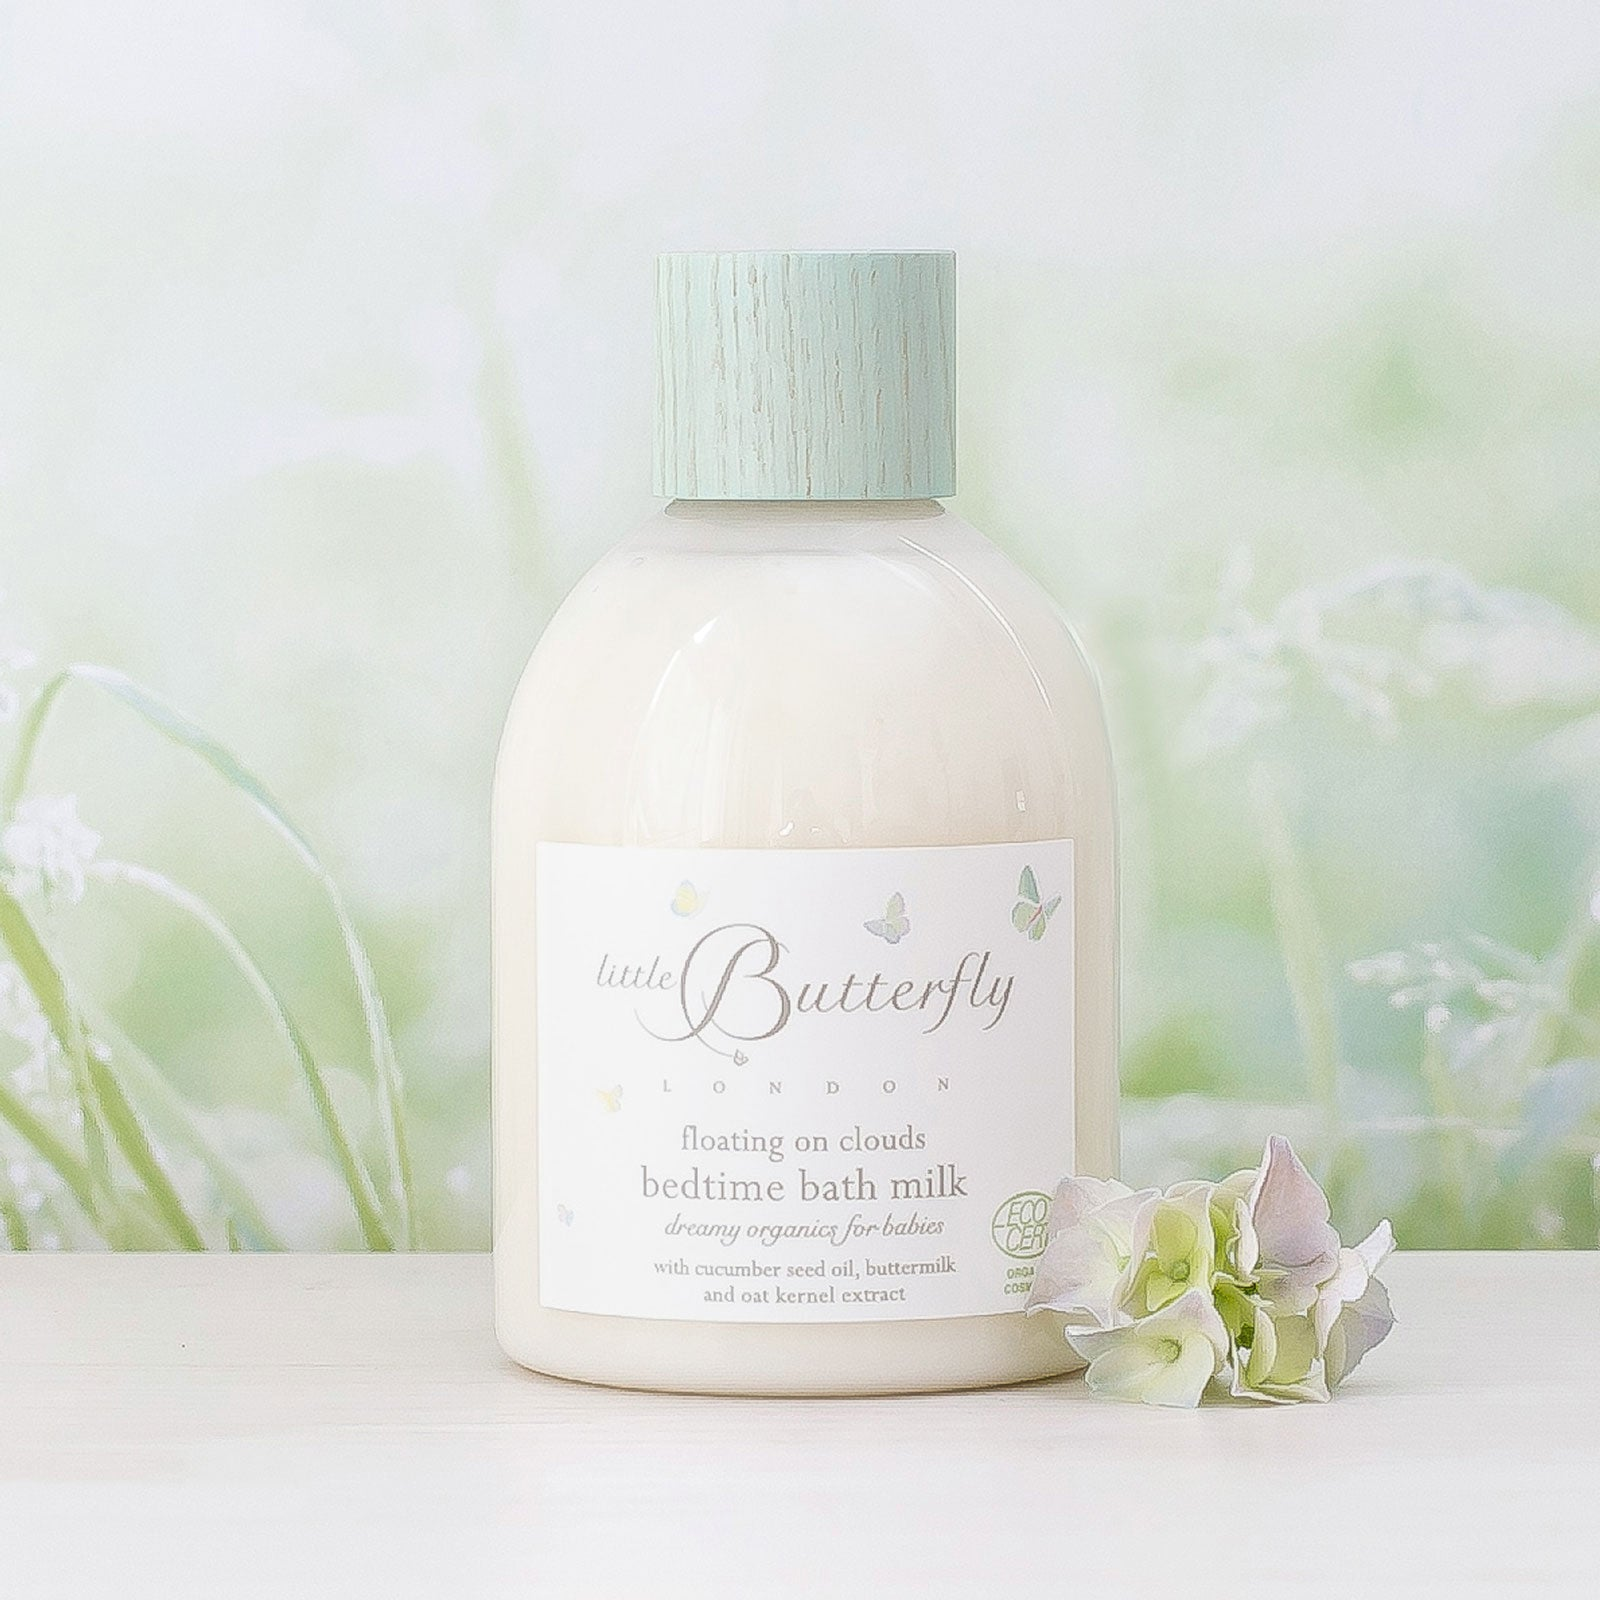 Little Butterfly London Floating on Clouds Bedtime Bath Milk 250ml